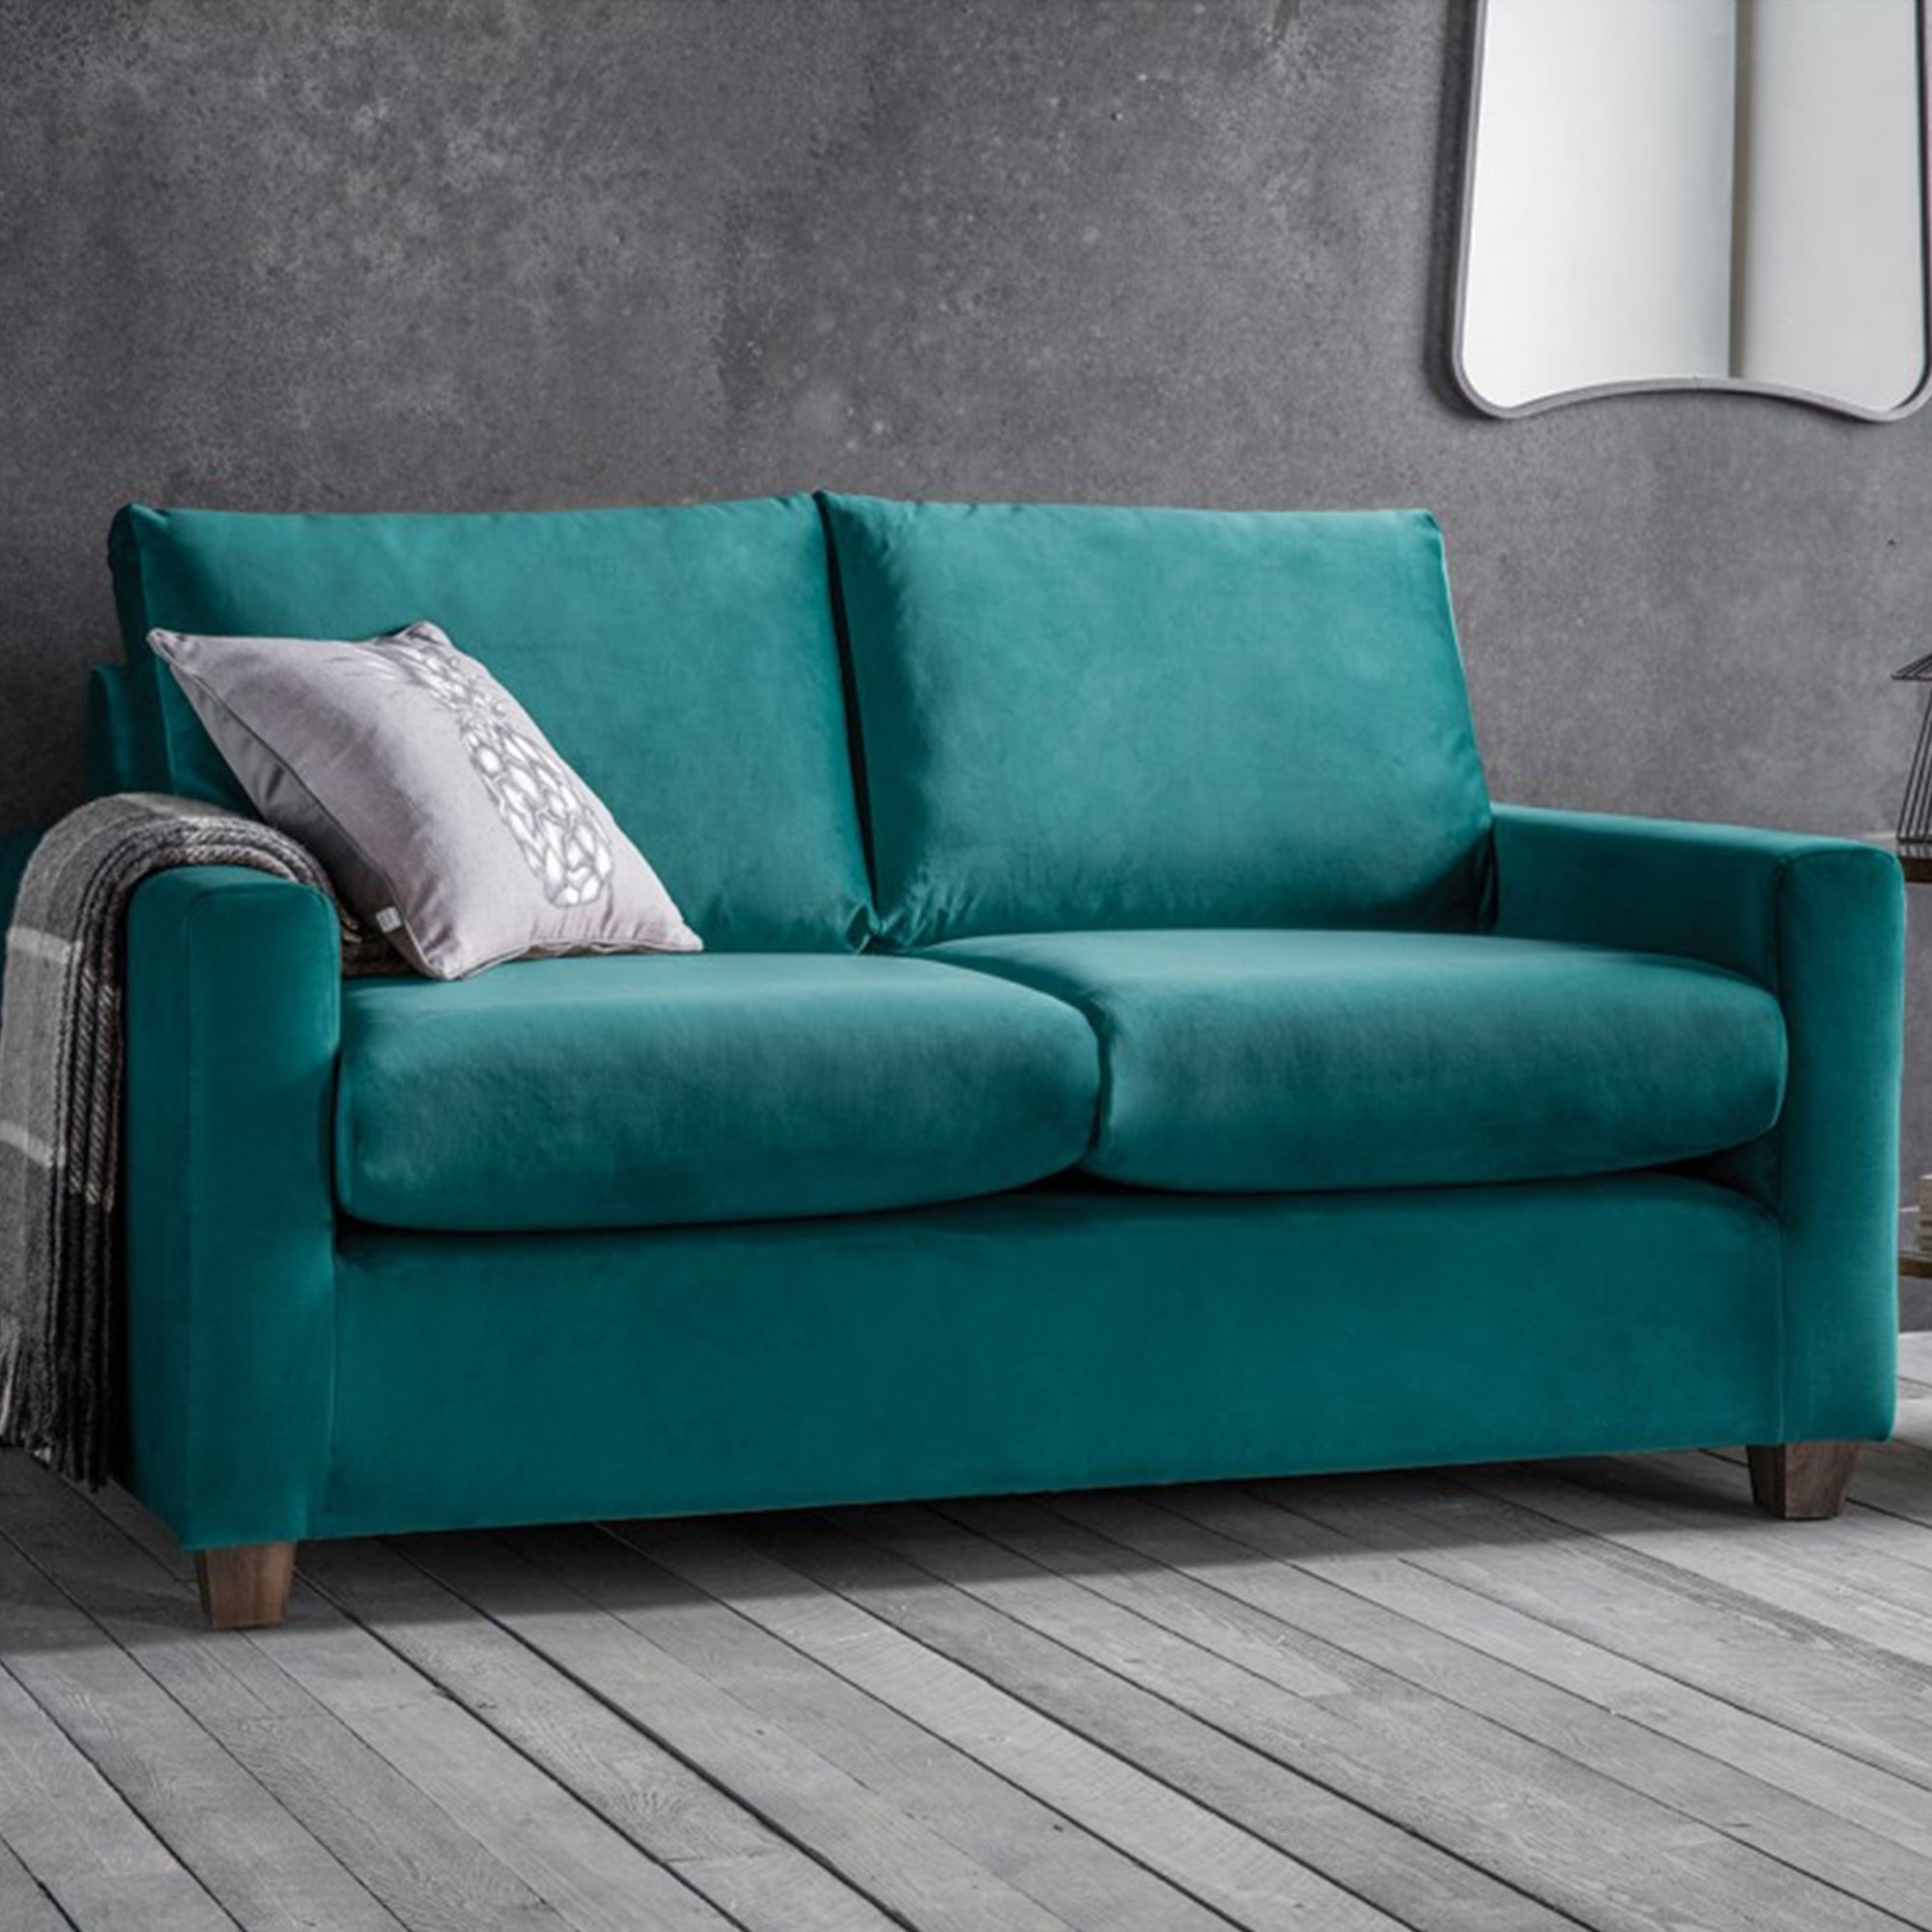 Brussels Petrol Stratford Sofa Seating Online At Homesdirect365 Throughout Stratford Sofas (Image 1 of 15)